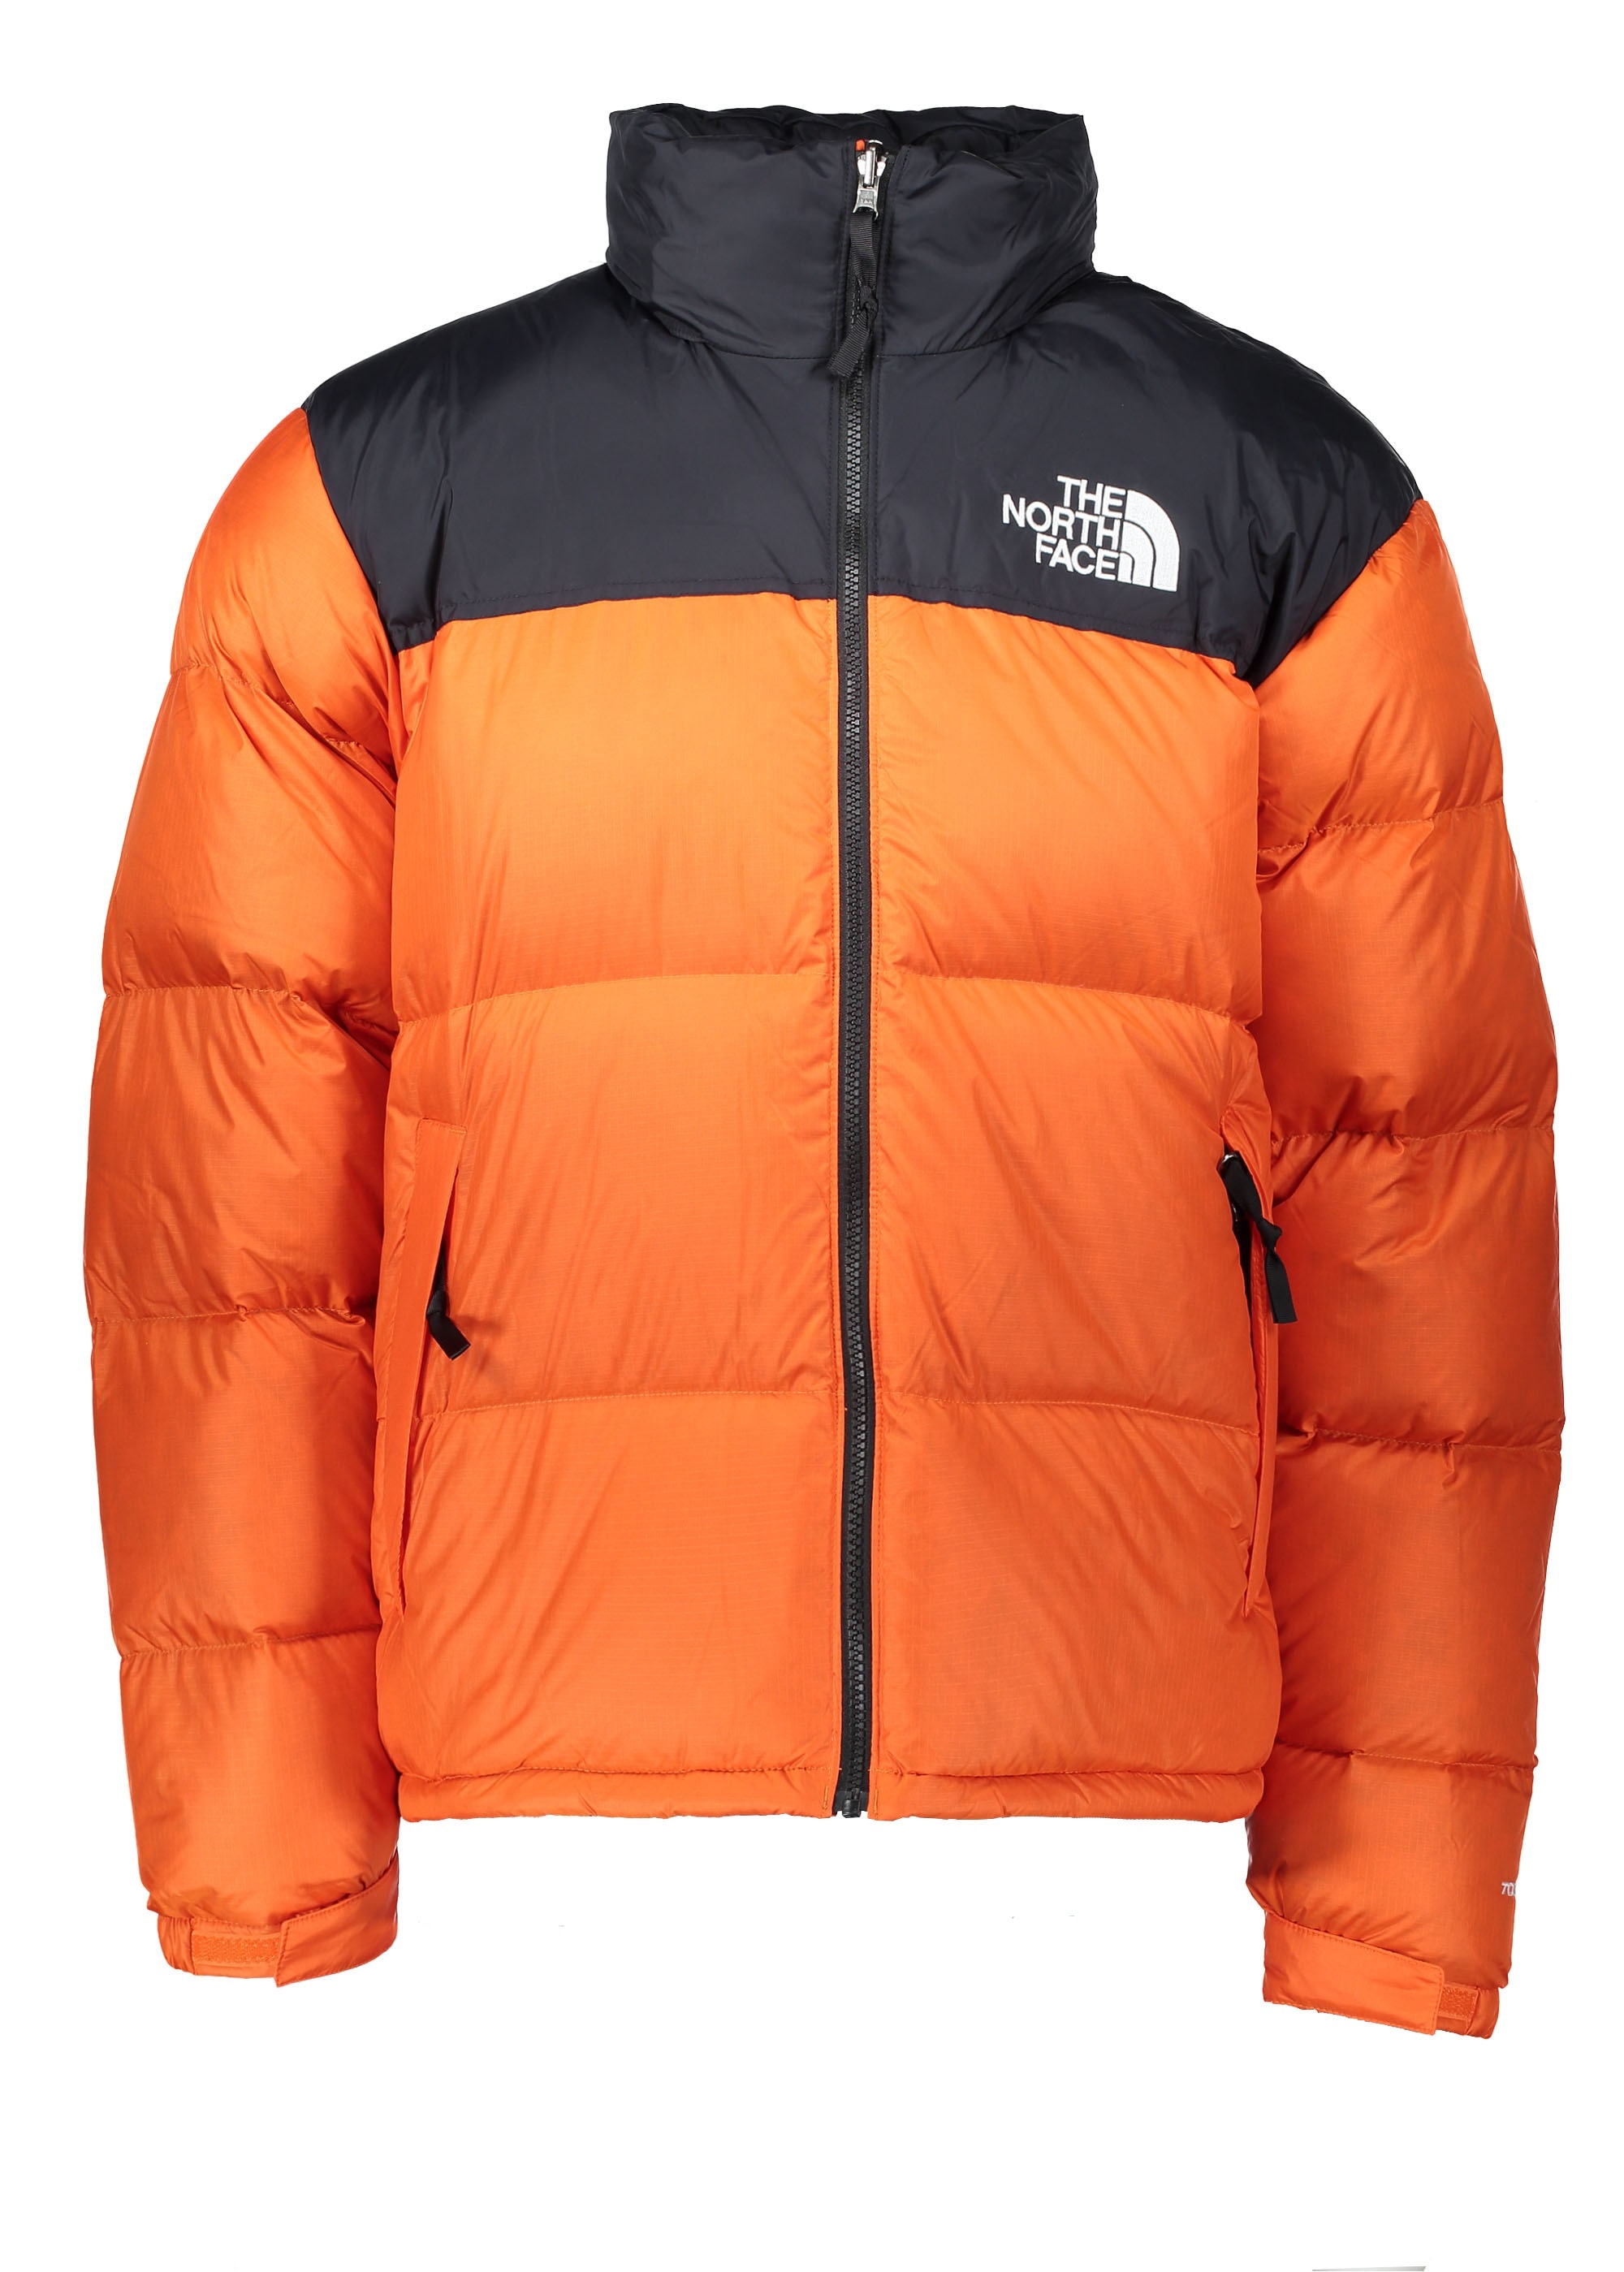 Efterstræbte The North Face 1996 RTO Nuptse Jacket - Persian Orange - Triads DD-88